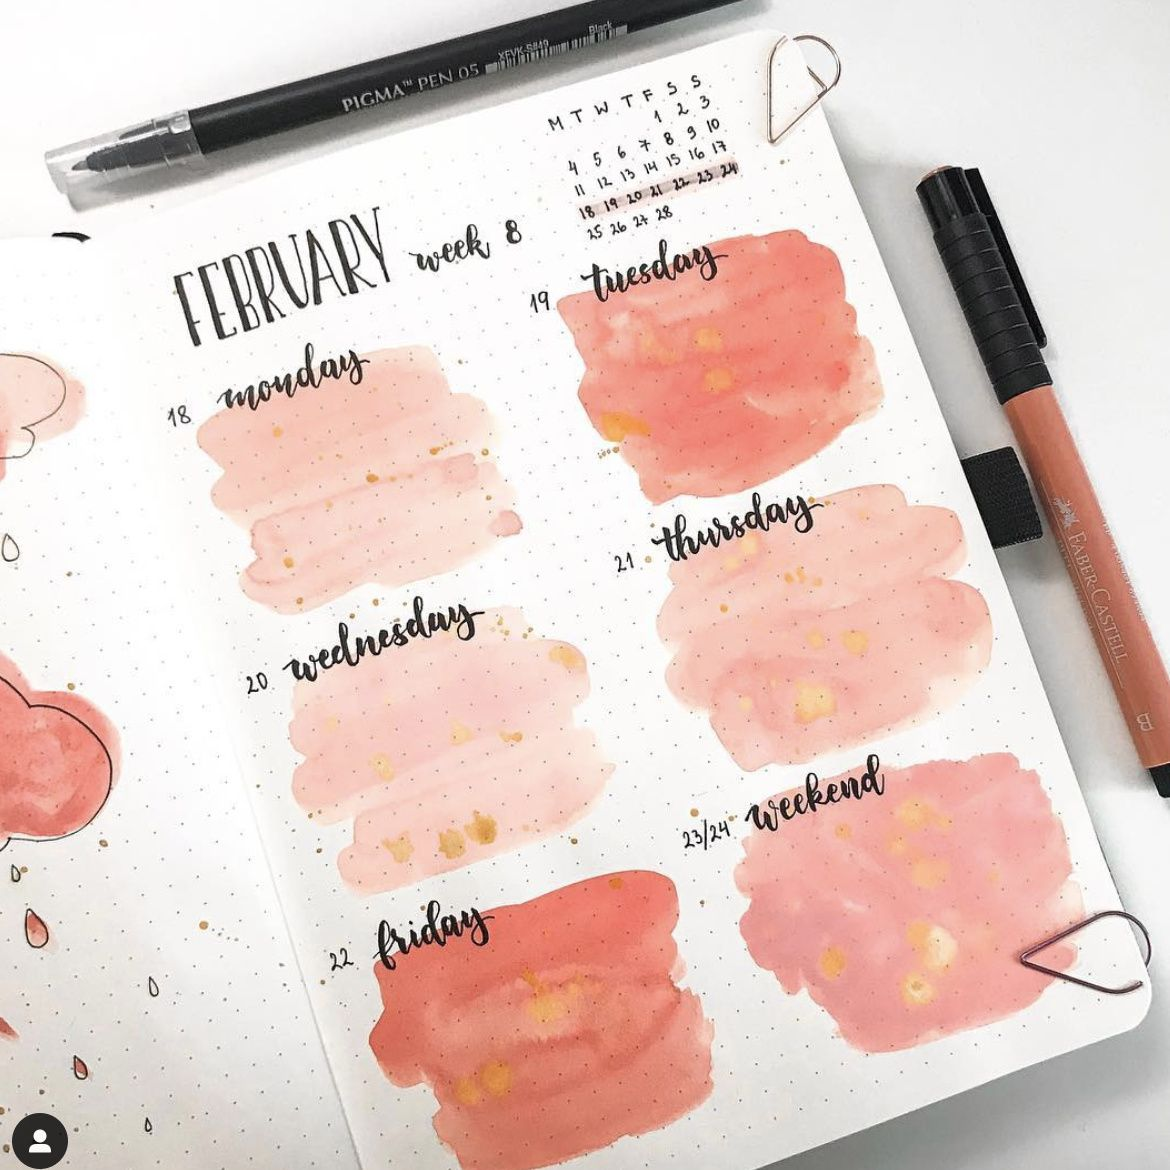 Looking for pink theme bullet journal ideas? Here are the best pink bullet journal spreads and layouts that you can use right away!   #bujo #bulletjournal #pinkbulletjournal #bulletjournalideas